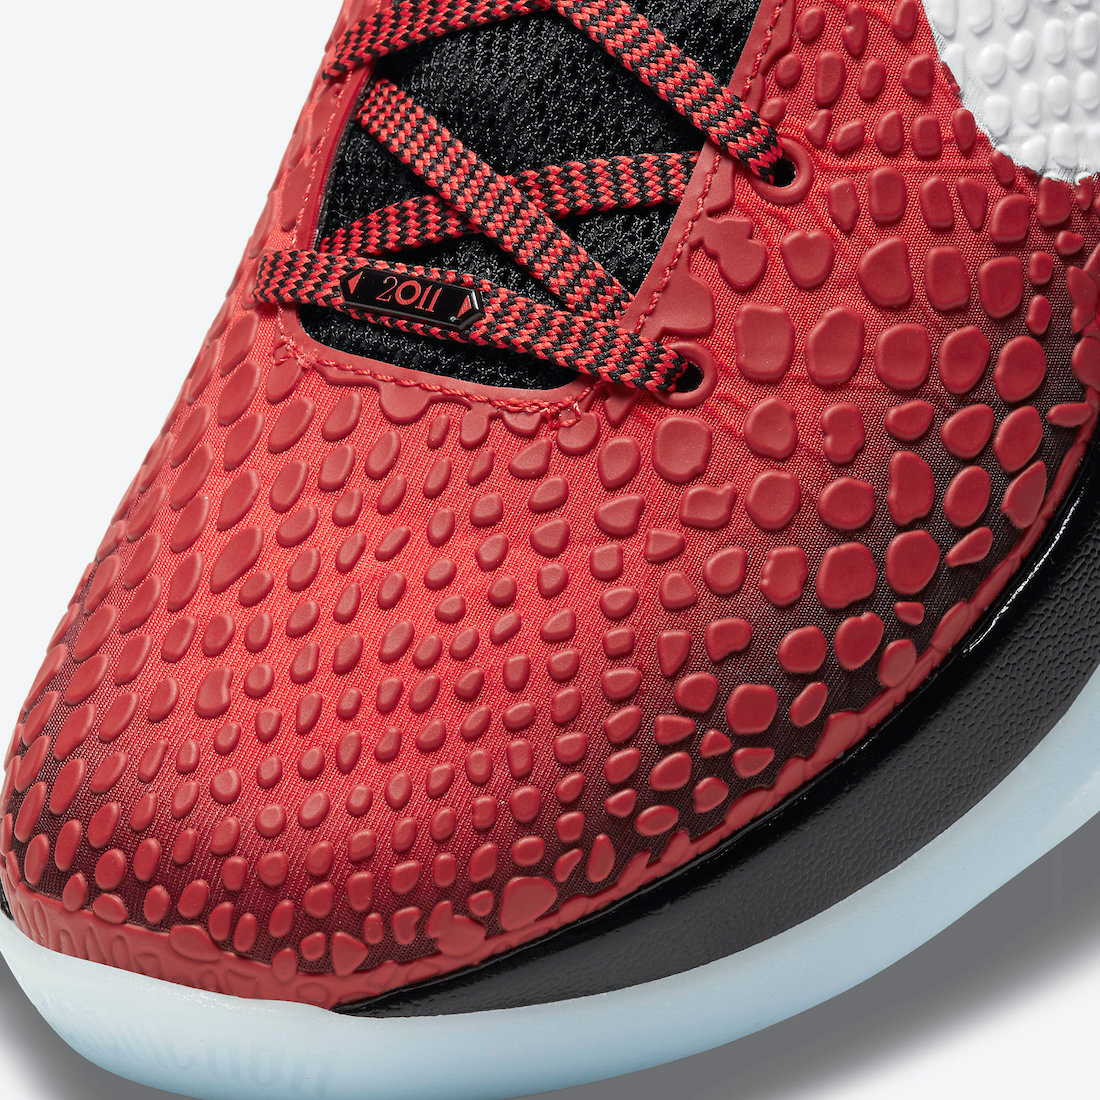 nike-kobe-6-protro-all-star-release-date-price-resell-where-to-buy-8